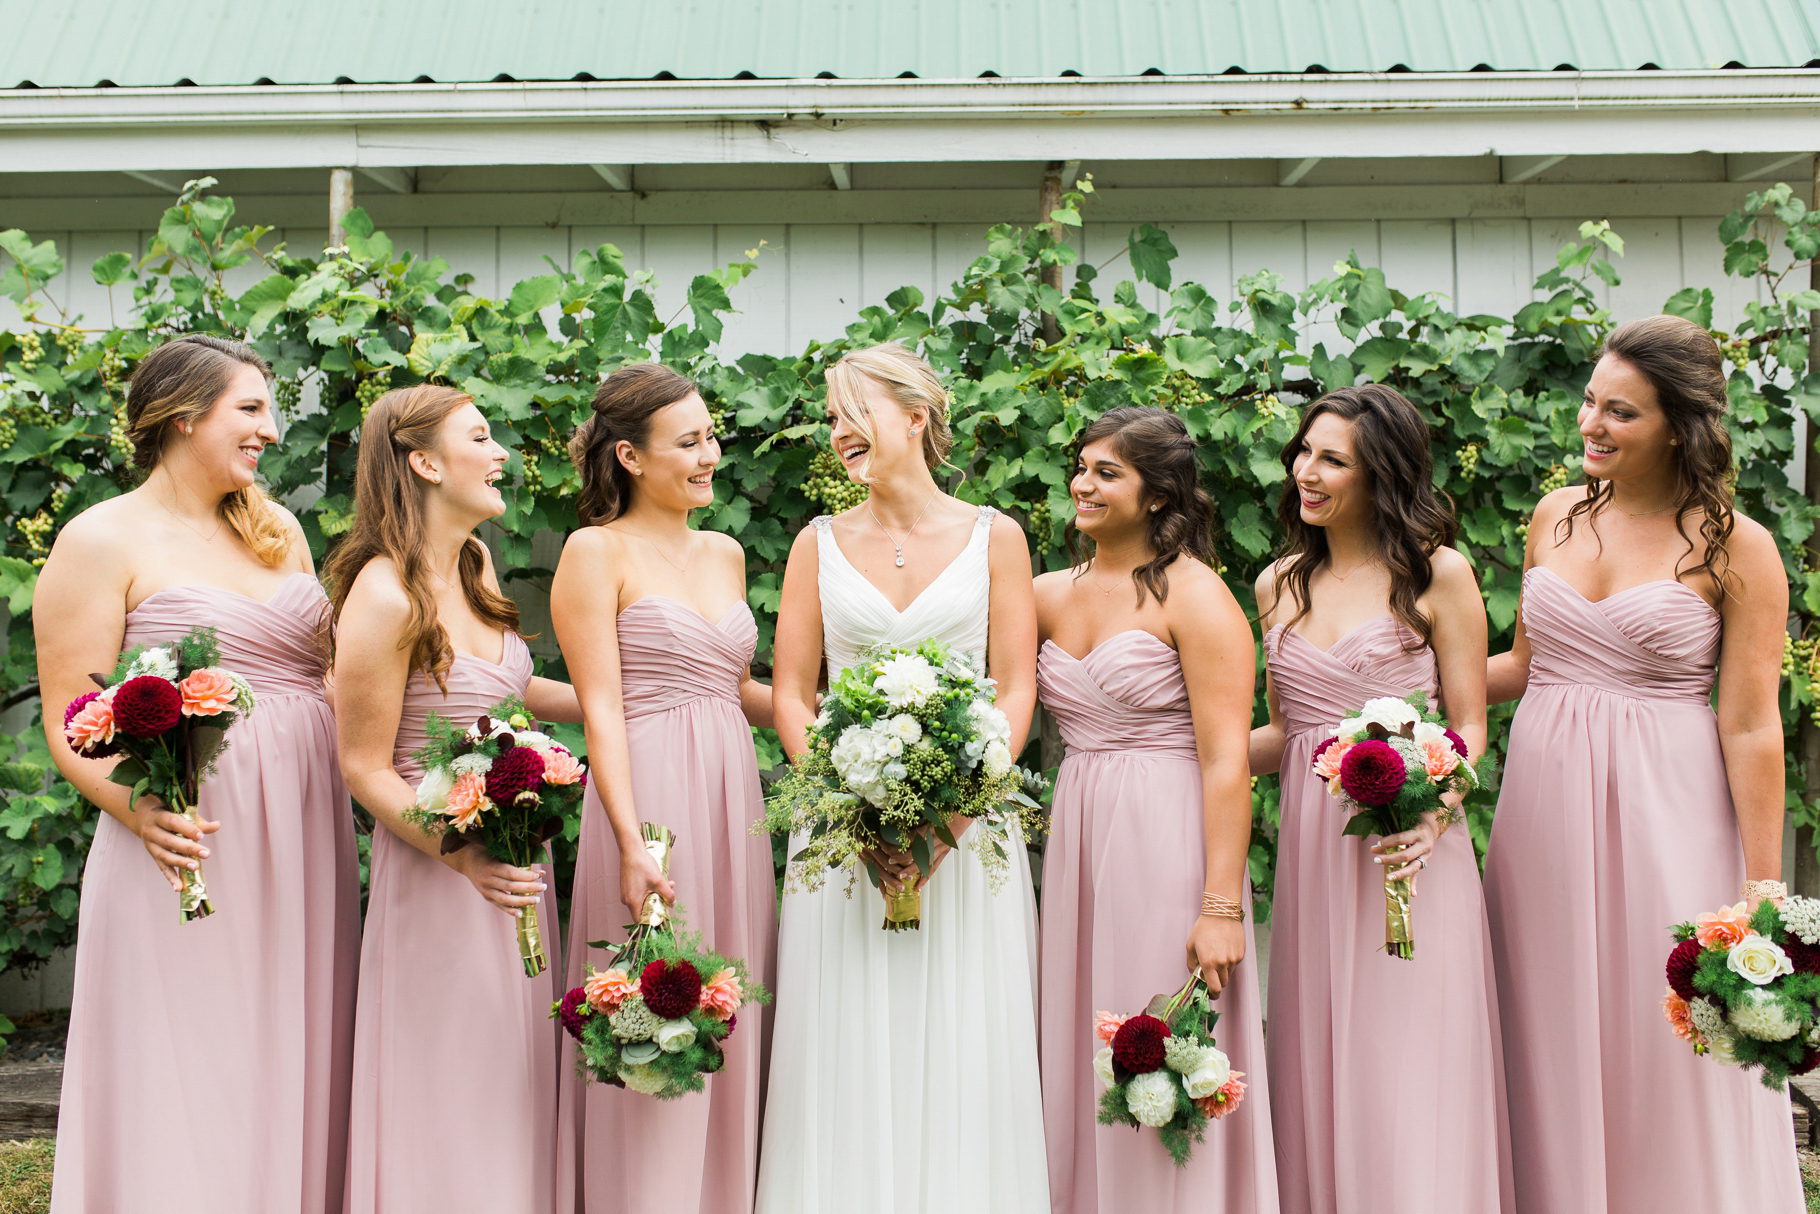 27-Woodinville-Bridesmaids-Washington-Winery-Delille-Cellars-Seattle-Wedding-Photographer